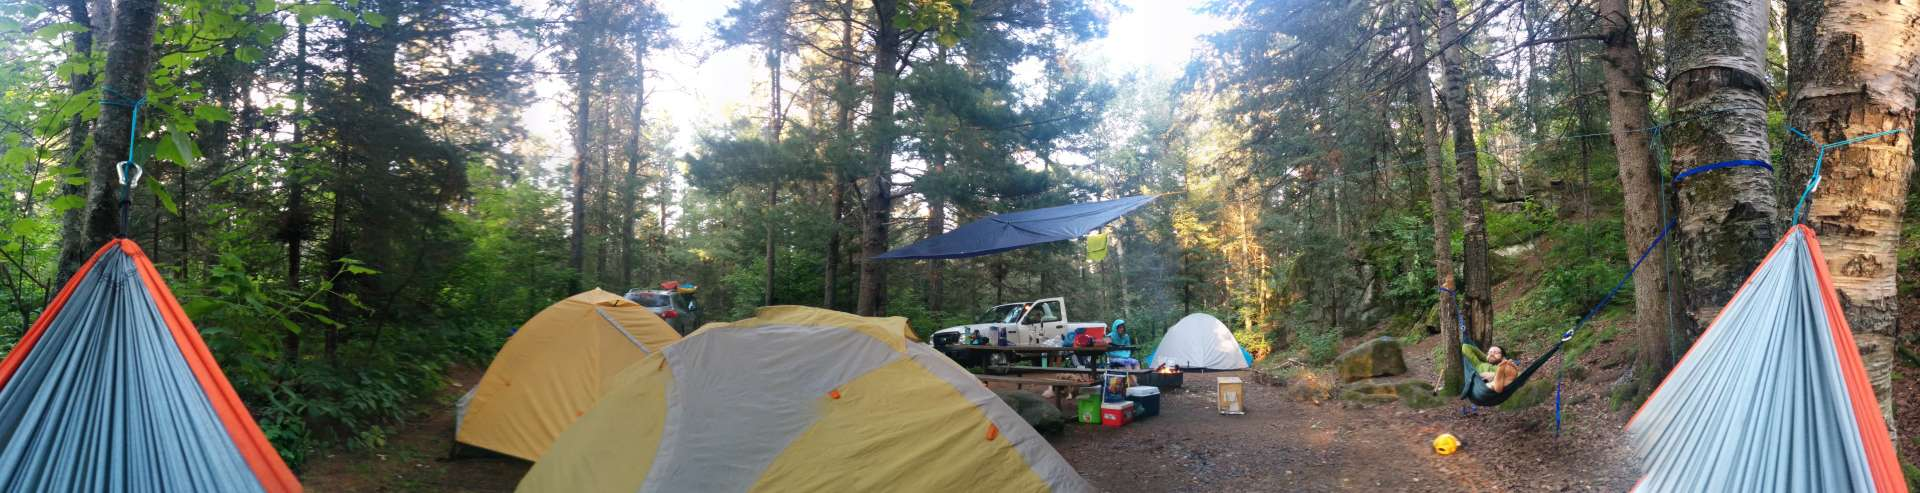 Camping in Finland: civilized outdoor recreation 74